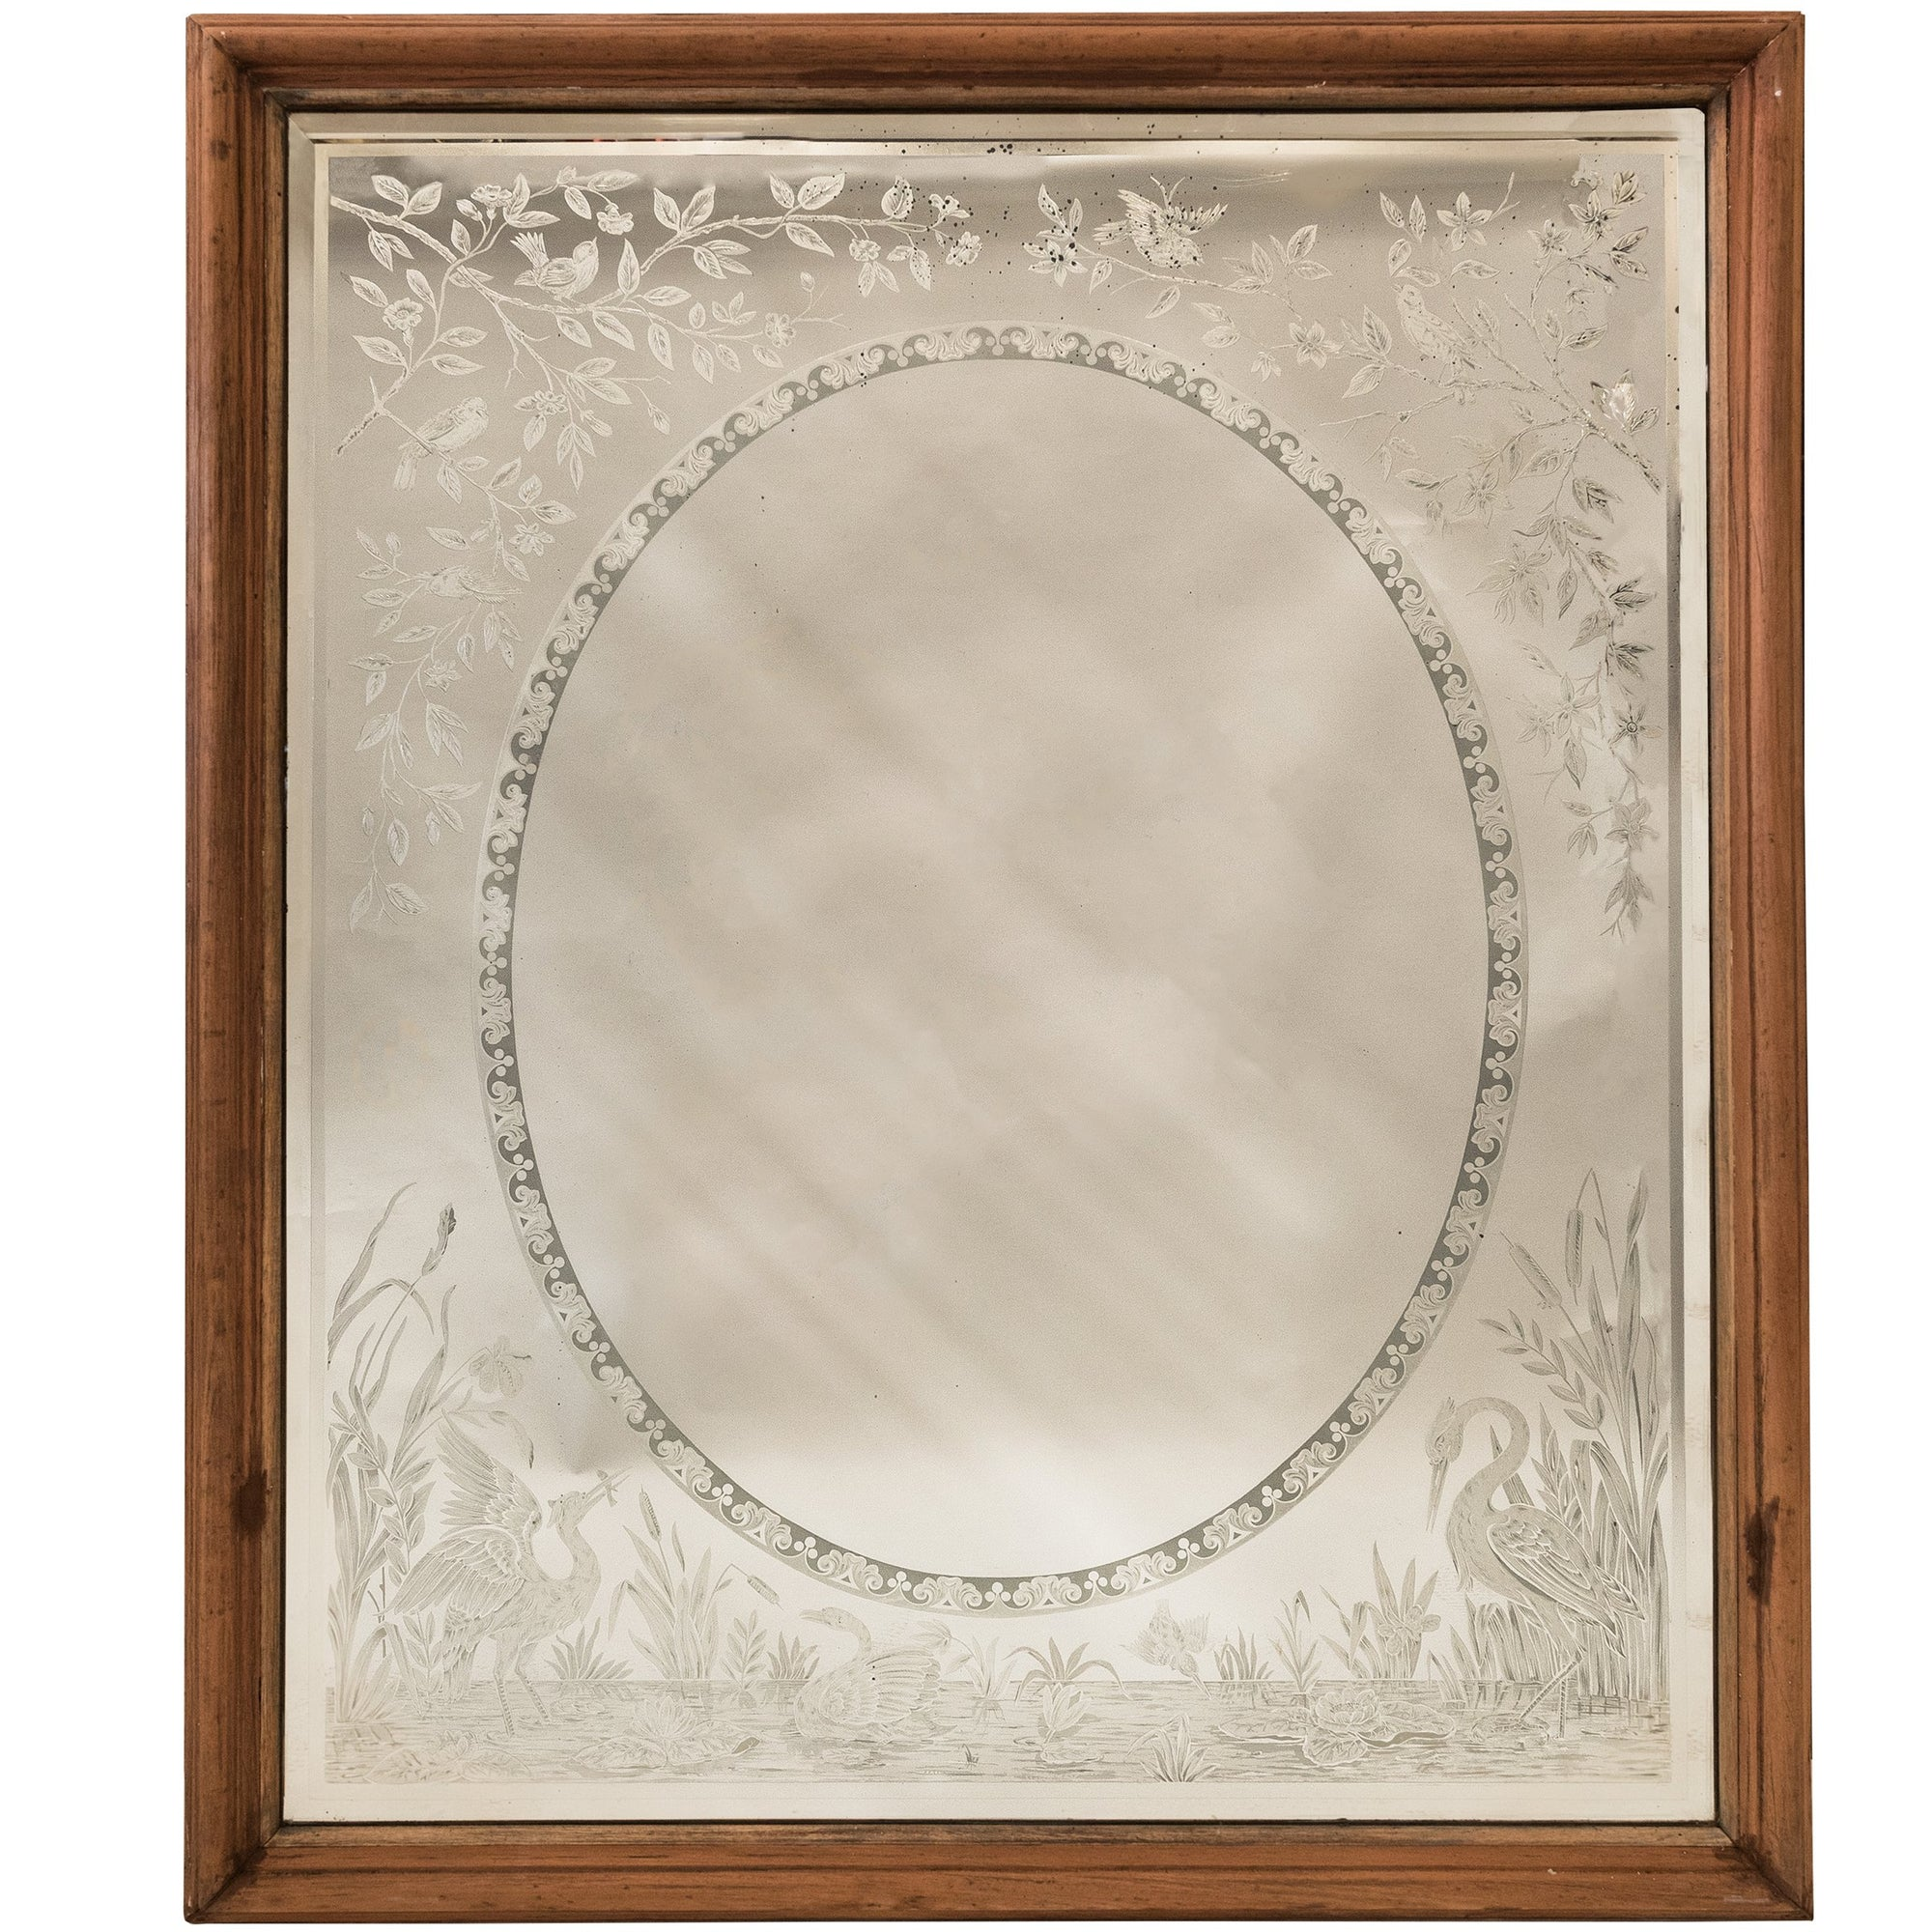 Large Antique Victorian Etched Mirror with Wooden Frame | The Architectural Forum